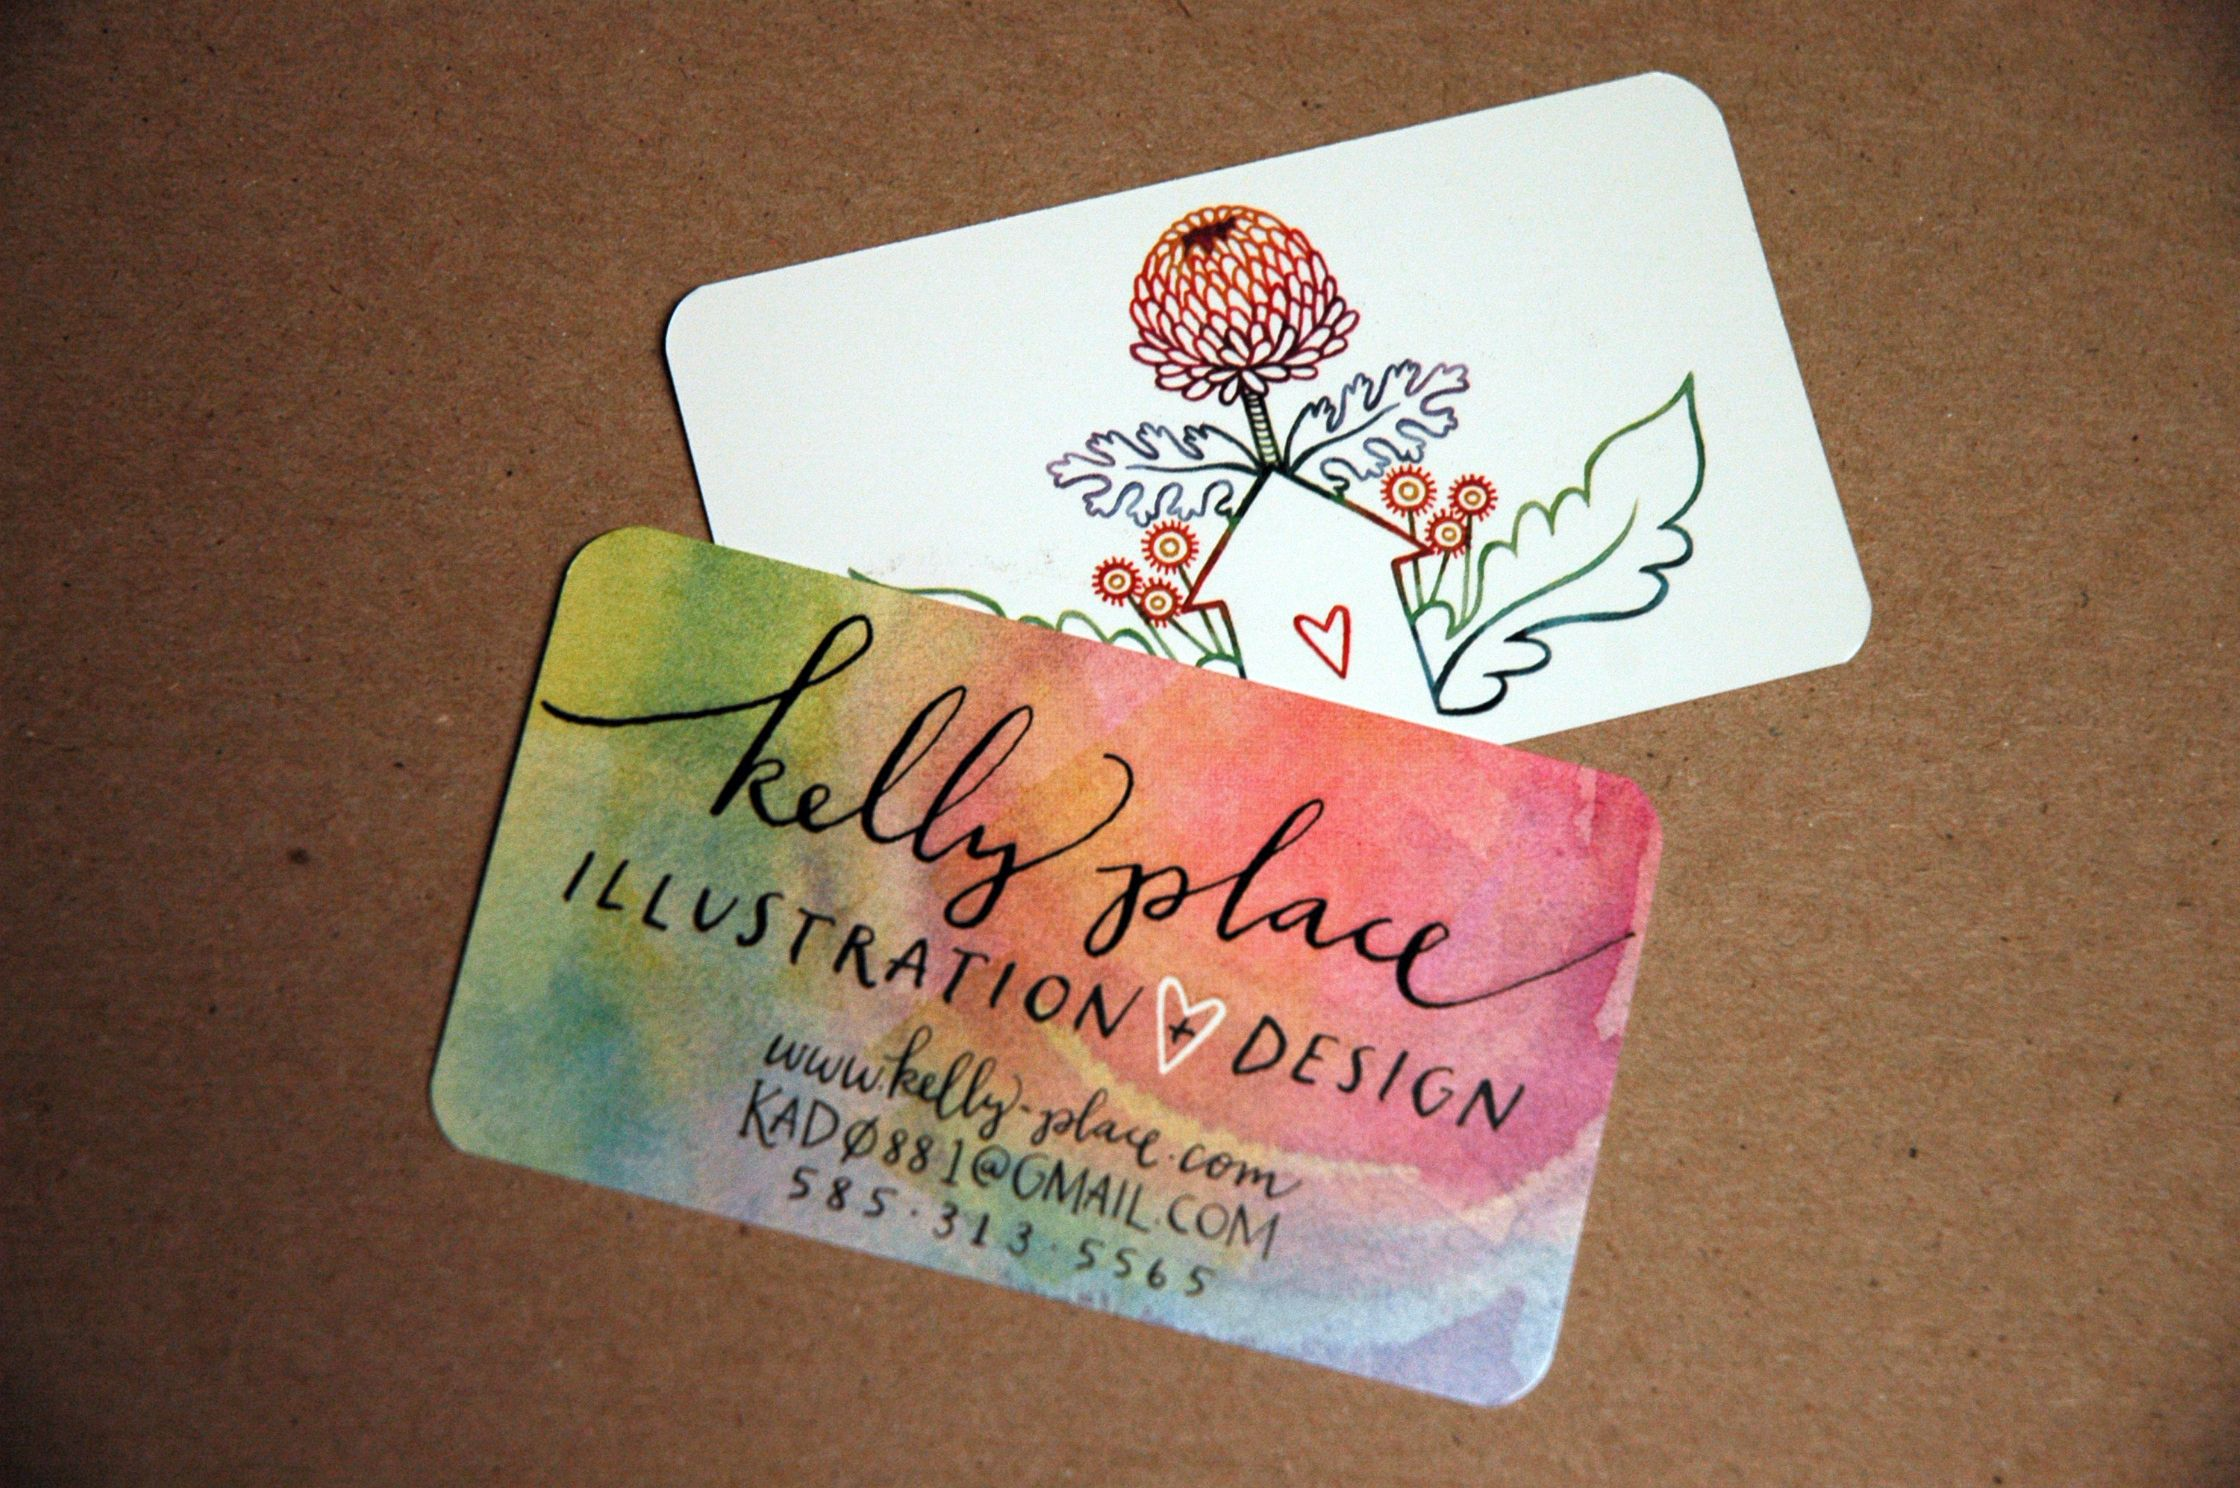 watercolor business cards - Google Search | Logos | Pinterest ...